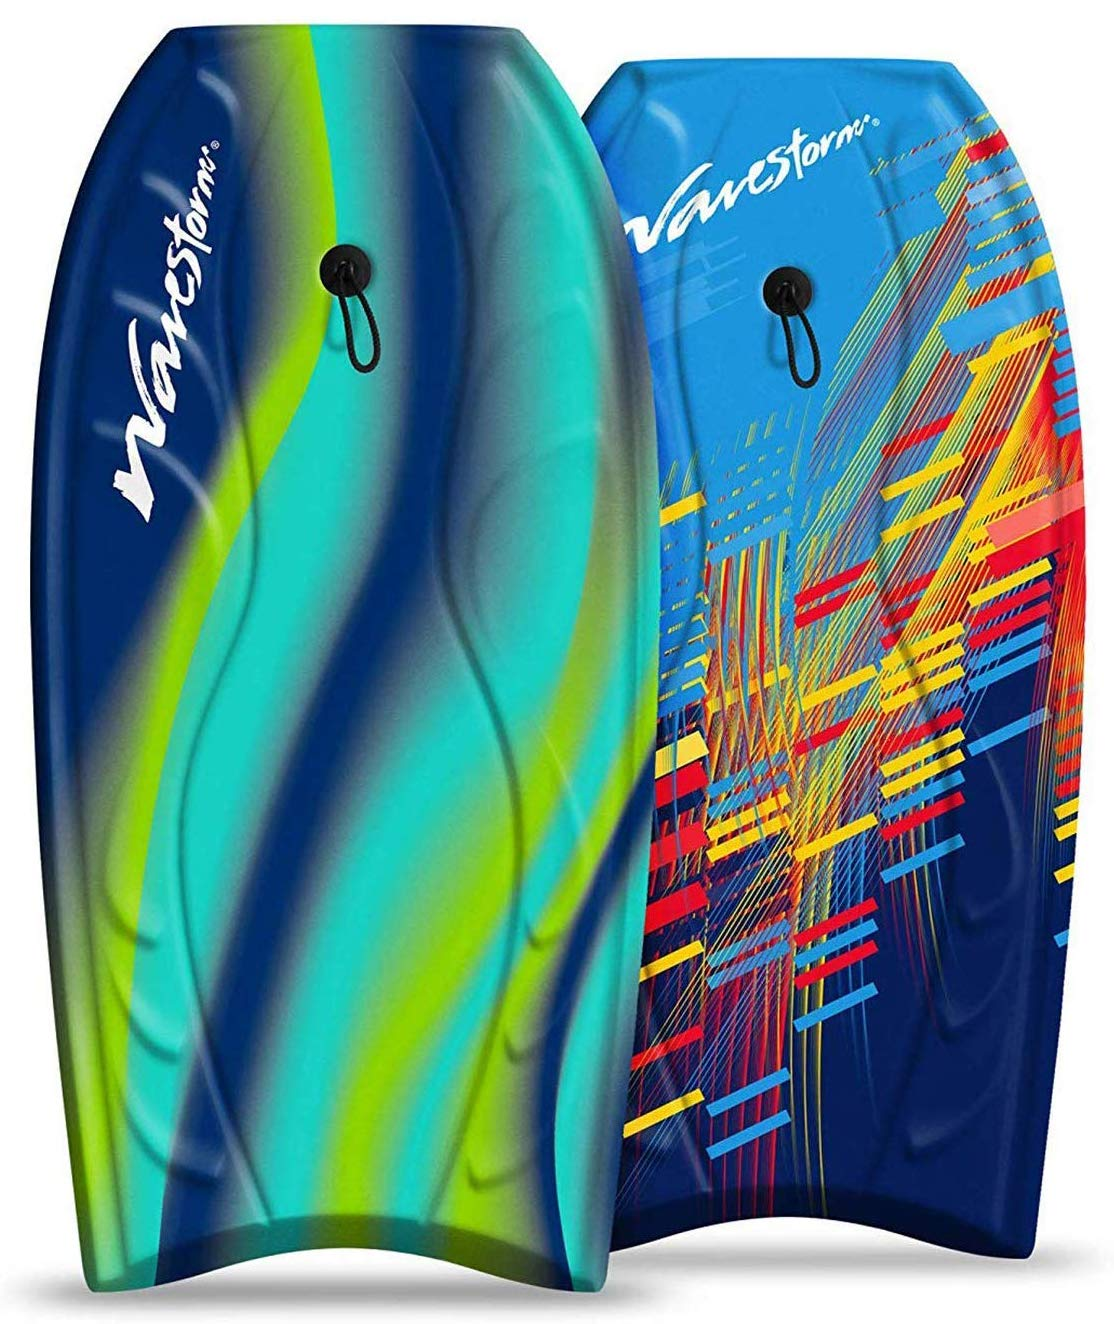 "Wavestorm 40"" Bodyboard 2-Pack"